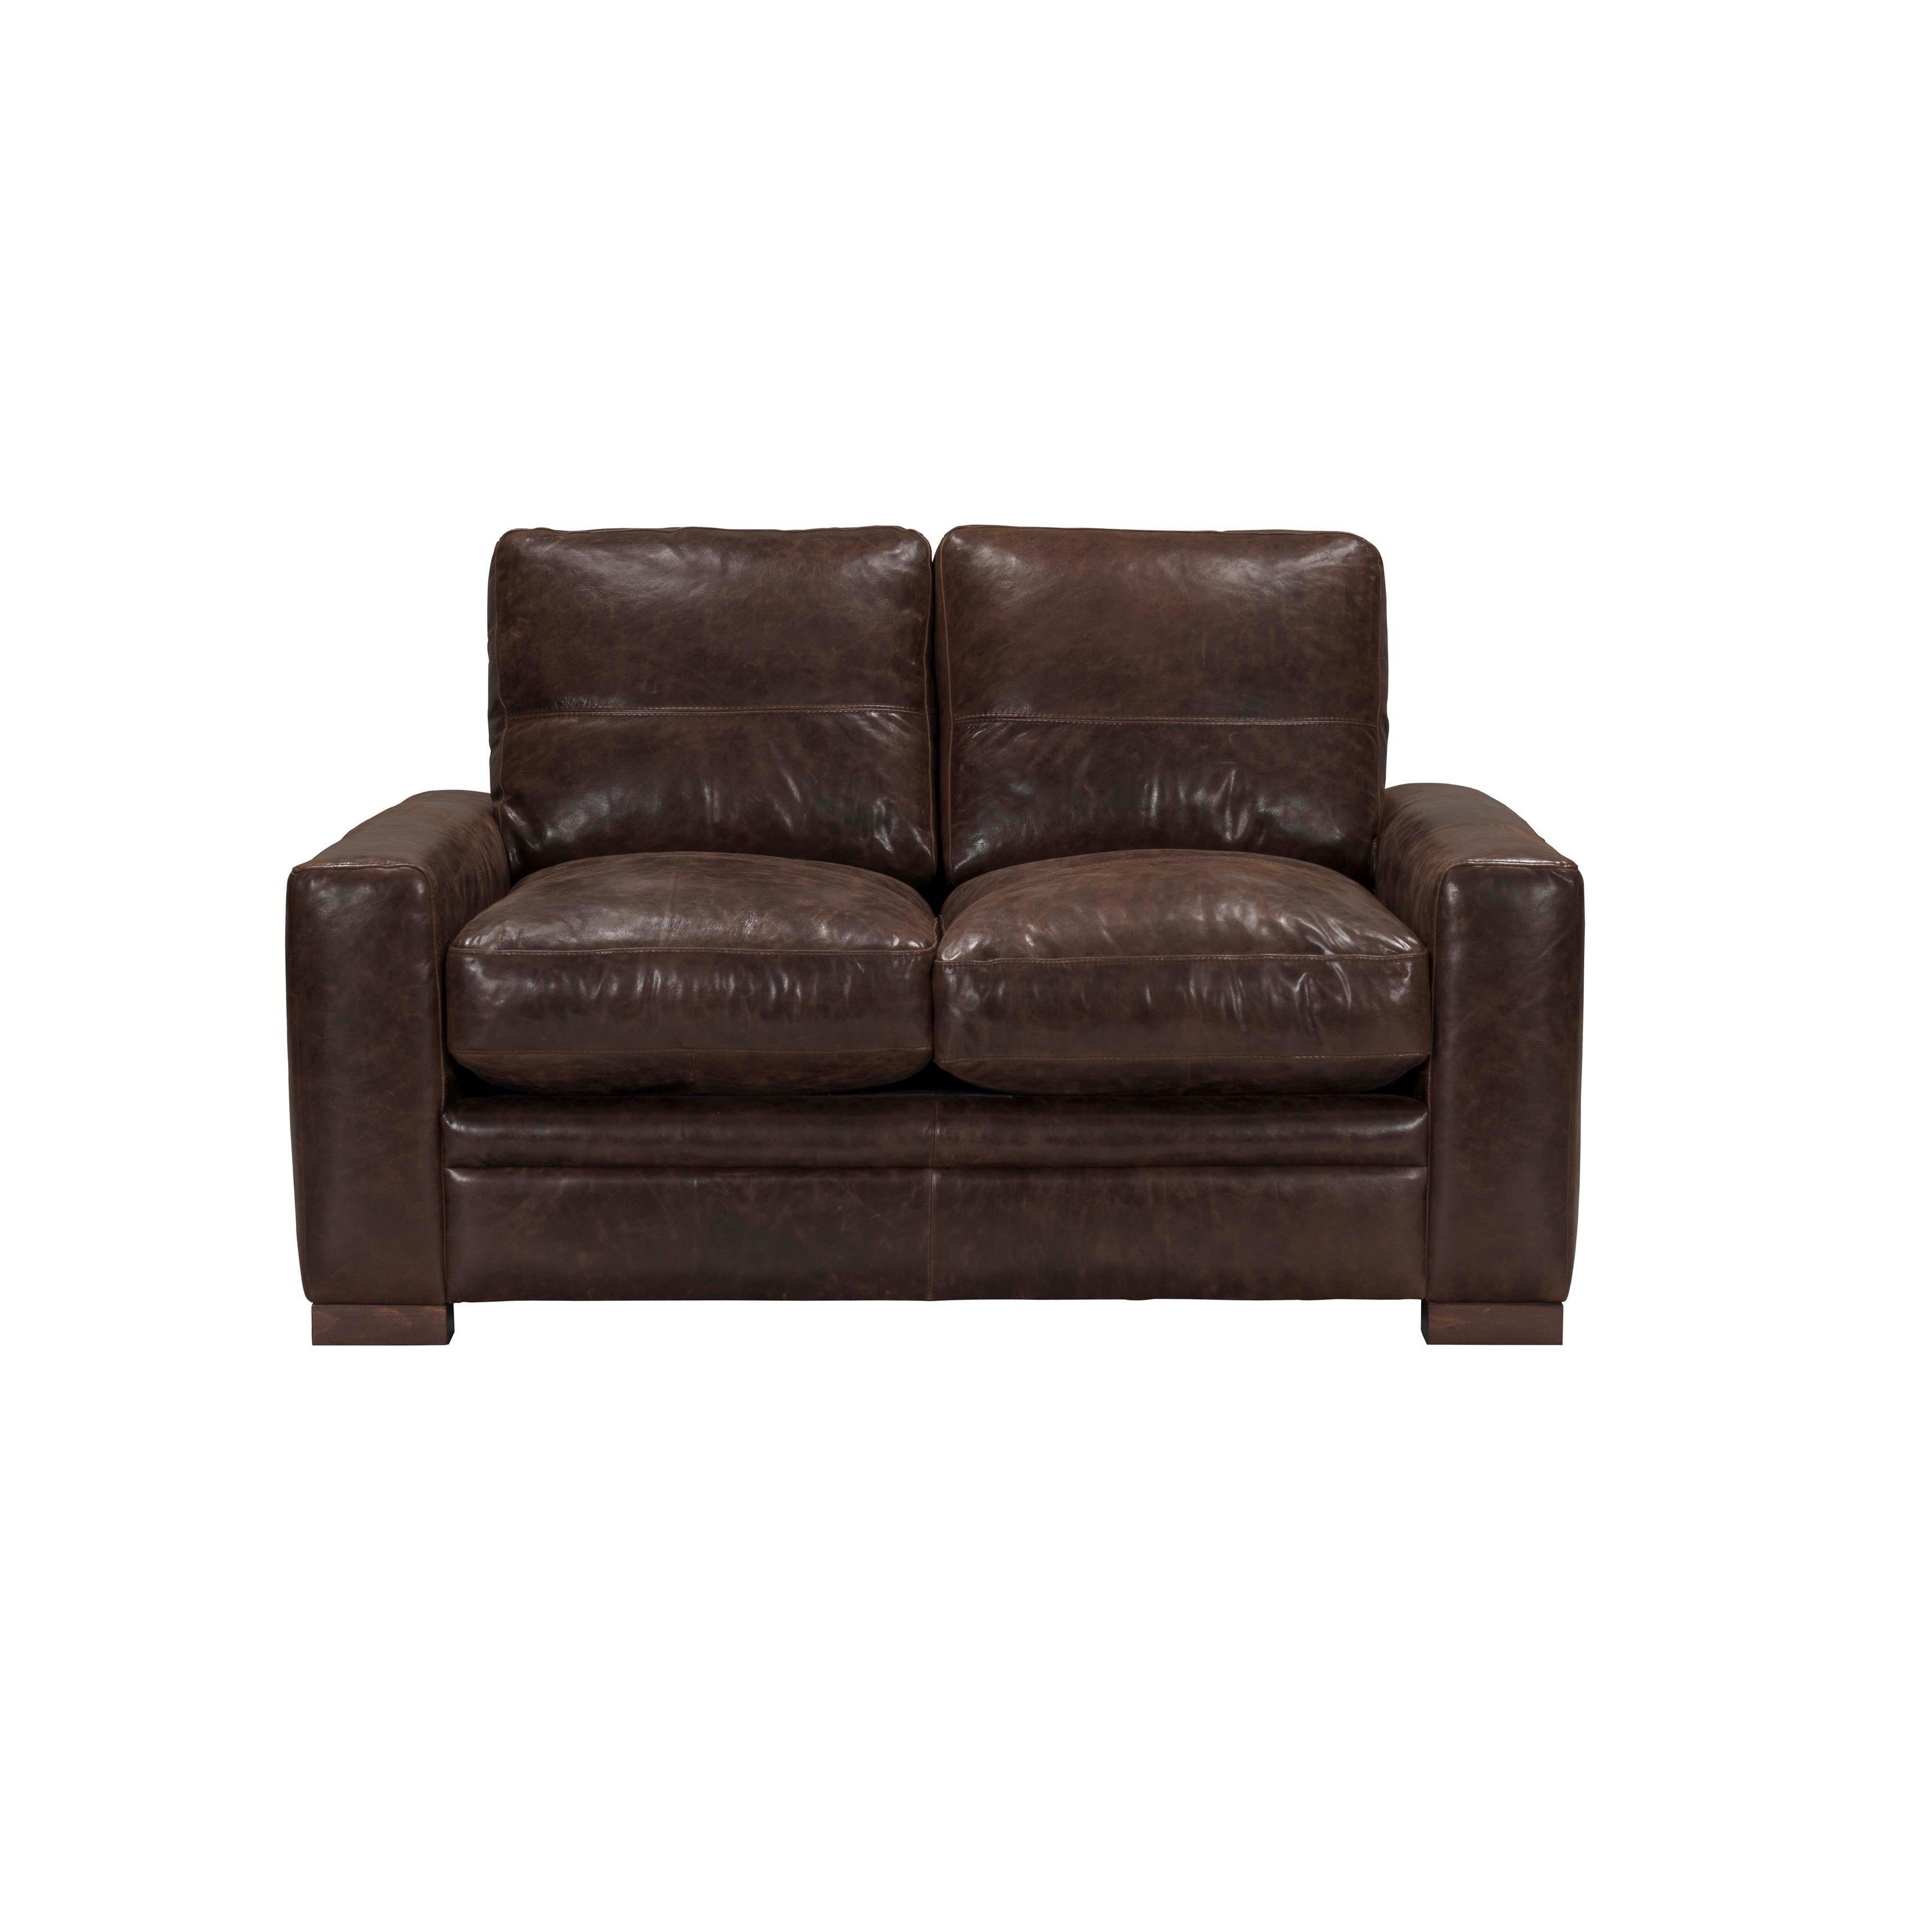 Amazing Acme Furniture Modena Vintage Espresso Top Grain Italian Made Leather Loveseat Caraccident5 Cool Chair Designs And Ideas Caraccident5Info